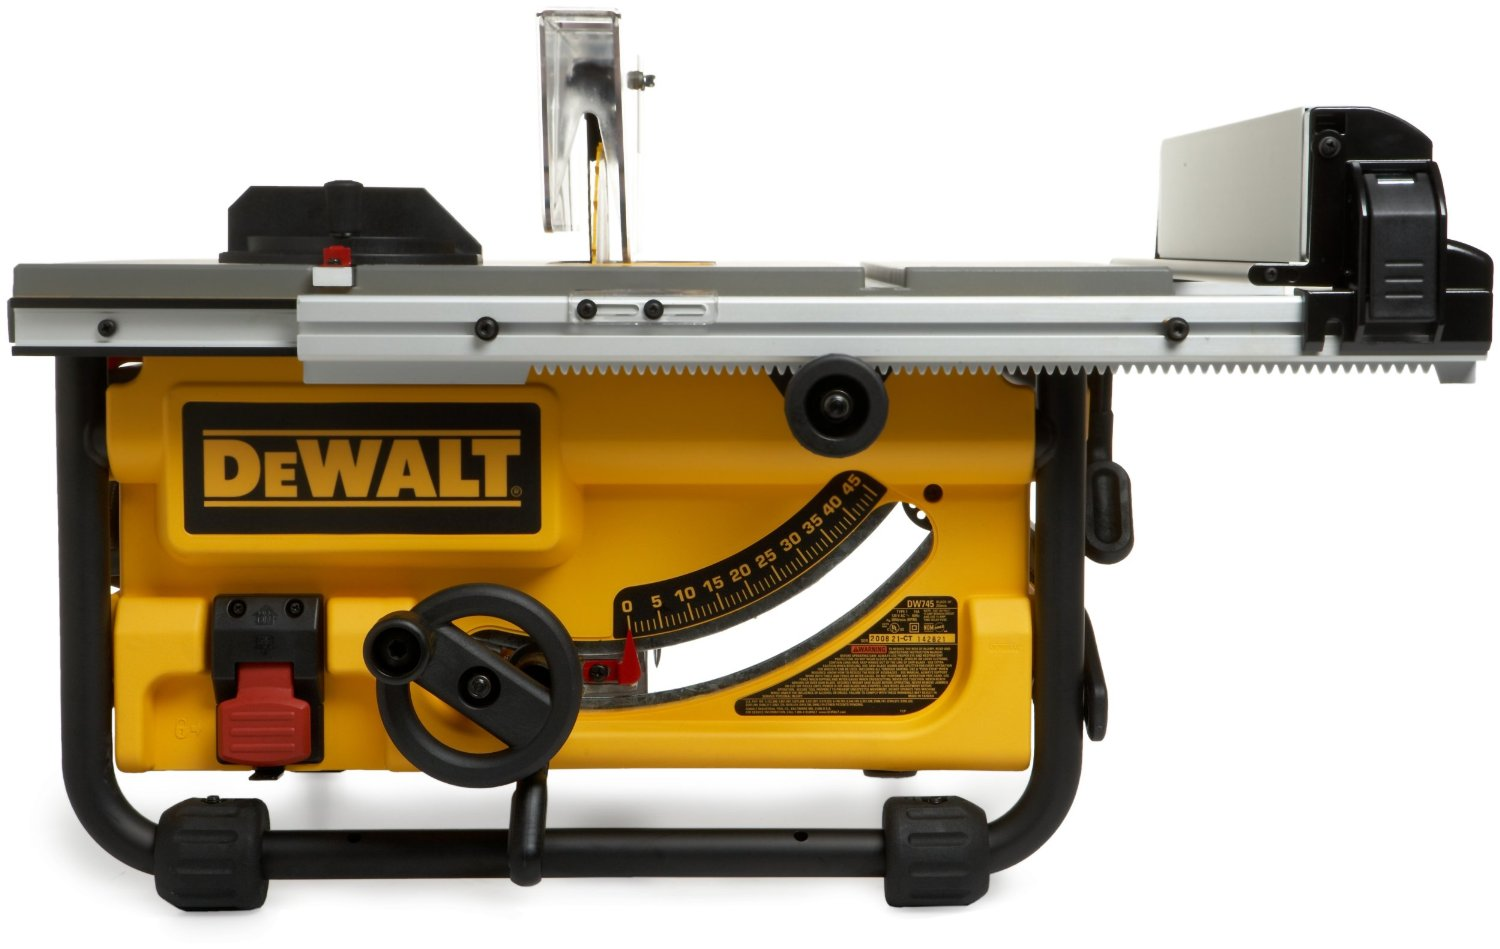 Dewalt dw745 10 inch portable table saw review Portable table saw reviews